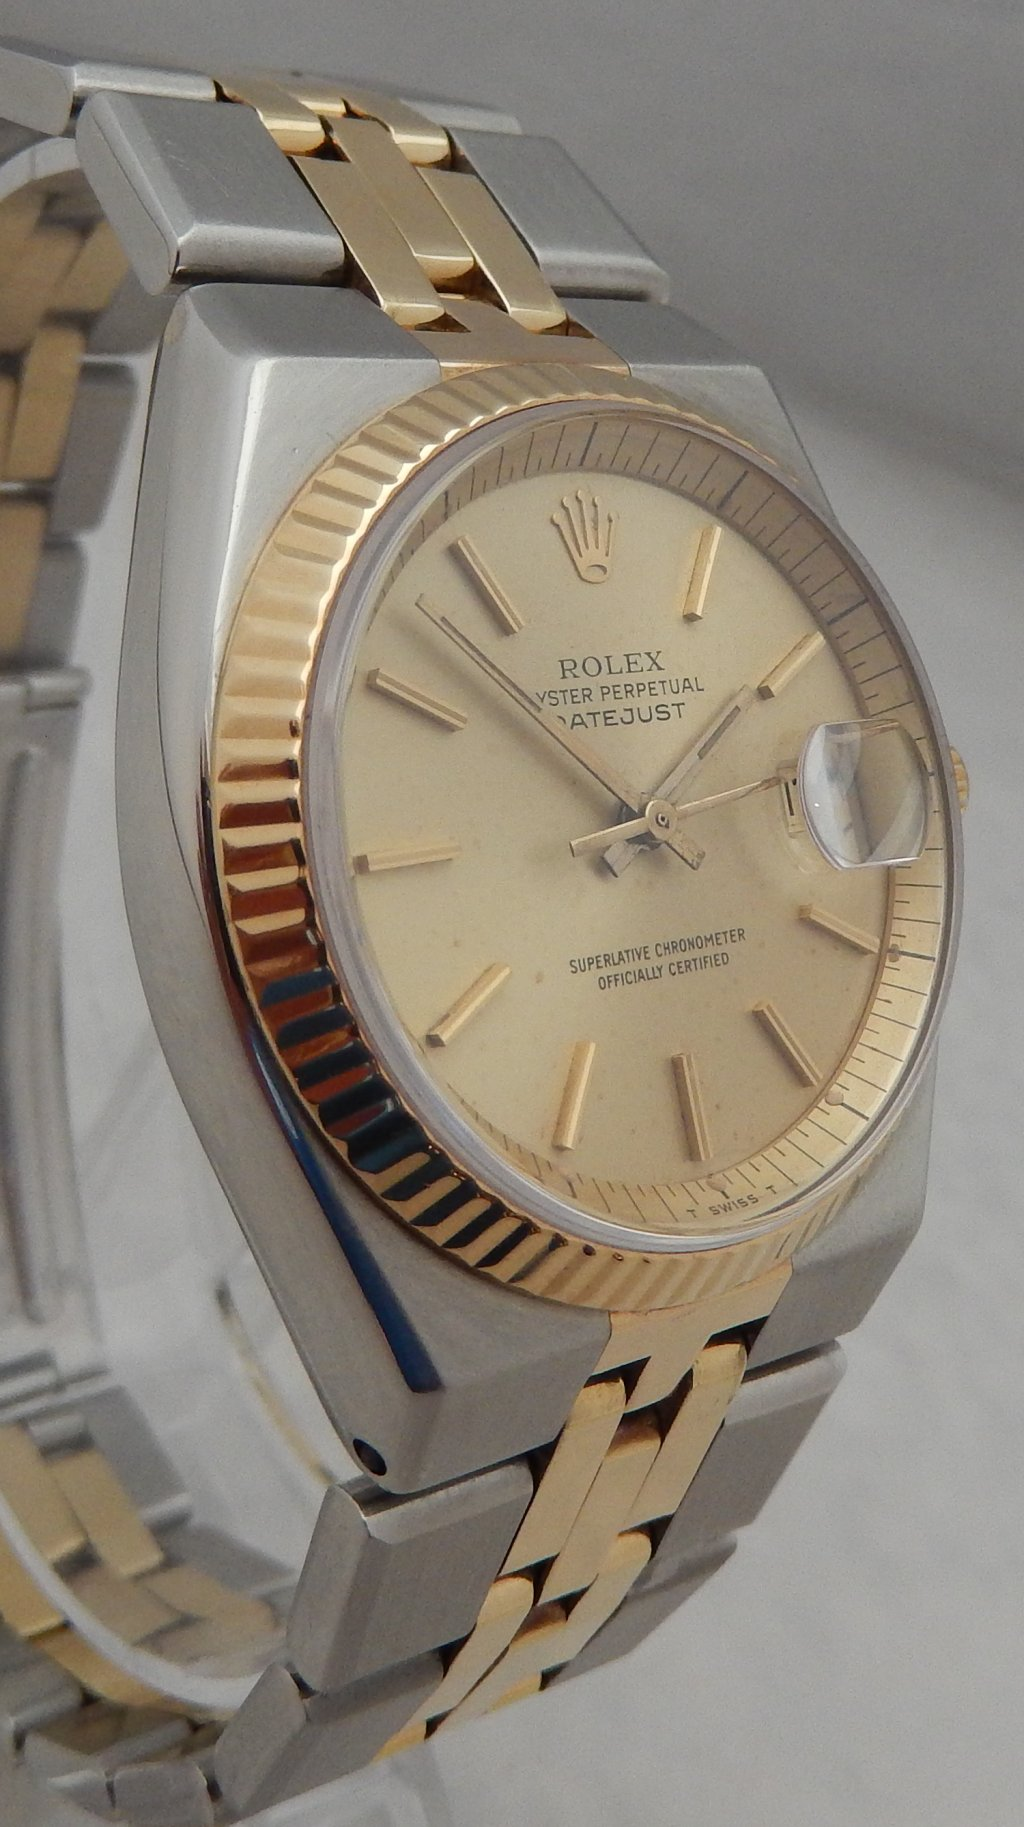 e8da4e5457b At the time of the listing the Perpetual winding Rolex signed cal 1570  movement with hack set sweeping seconds hand and date calendar was  inspected